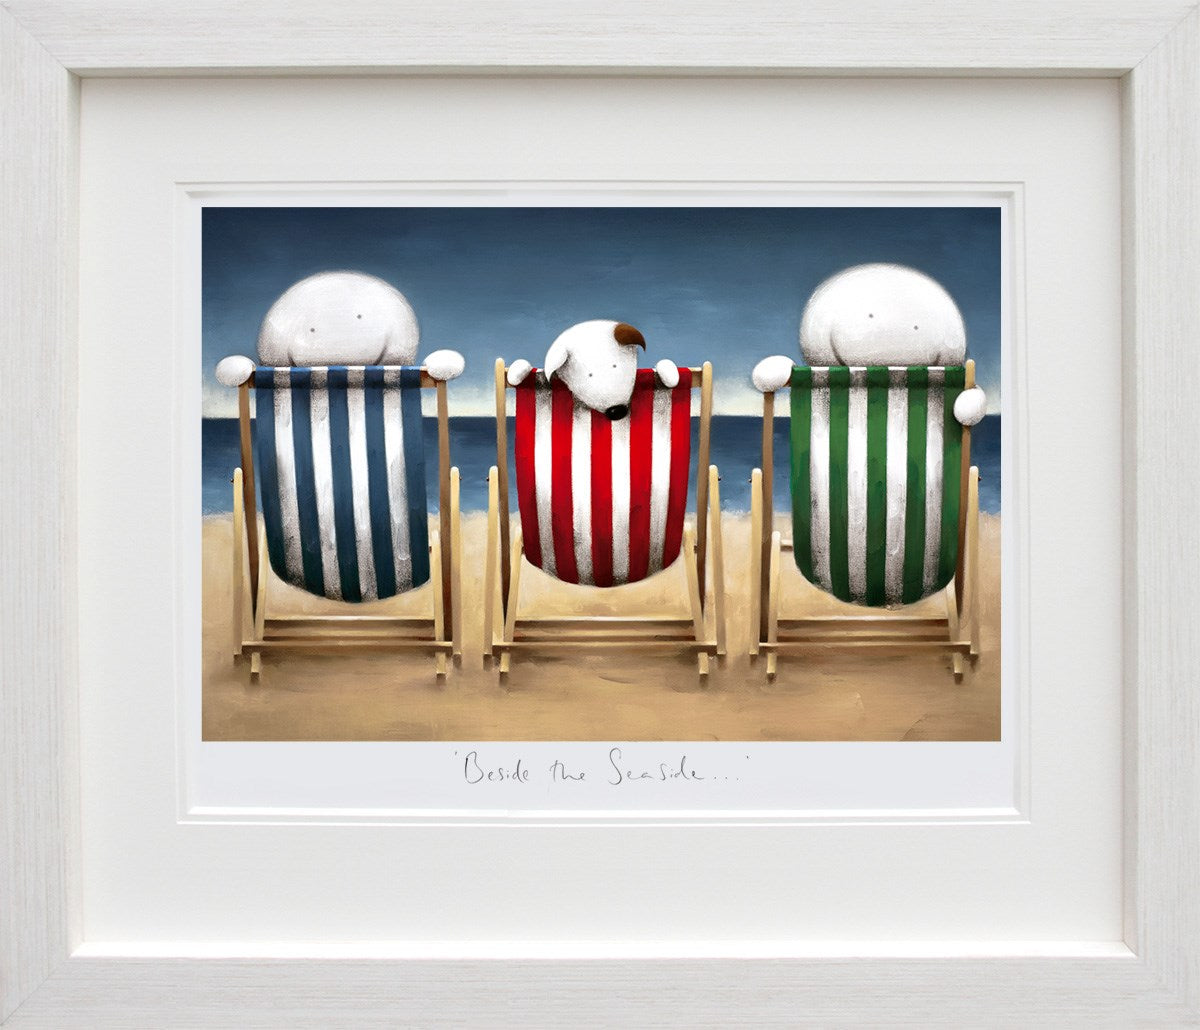 Beside the Seaside by Doug Hyde